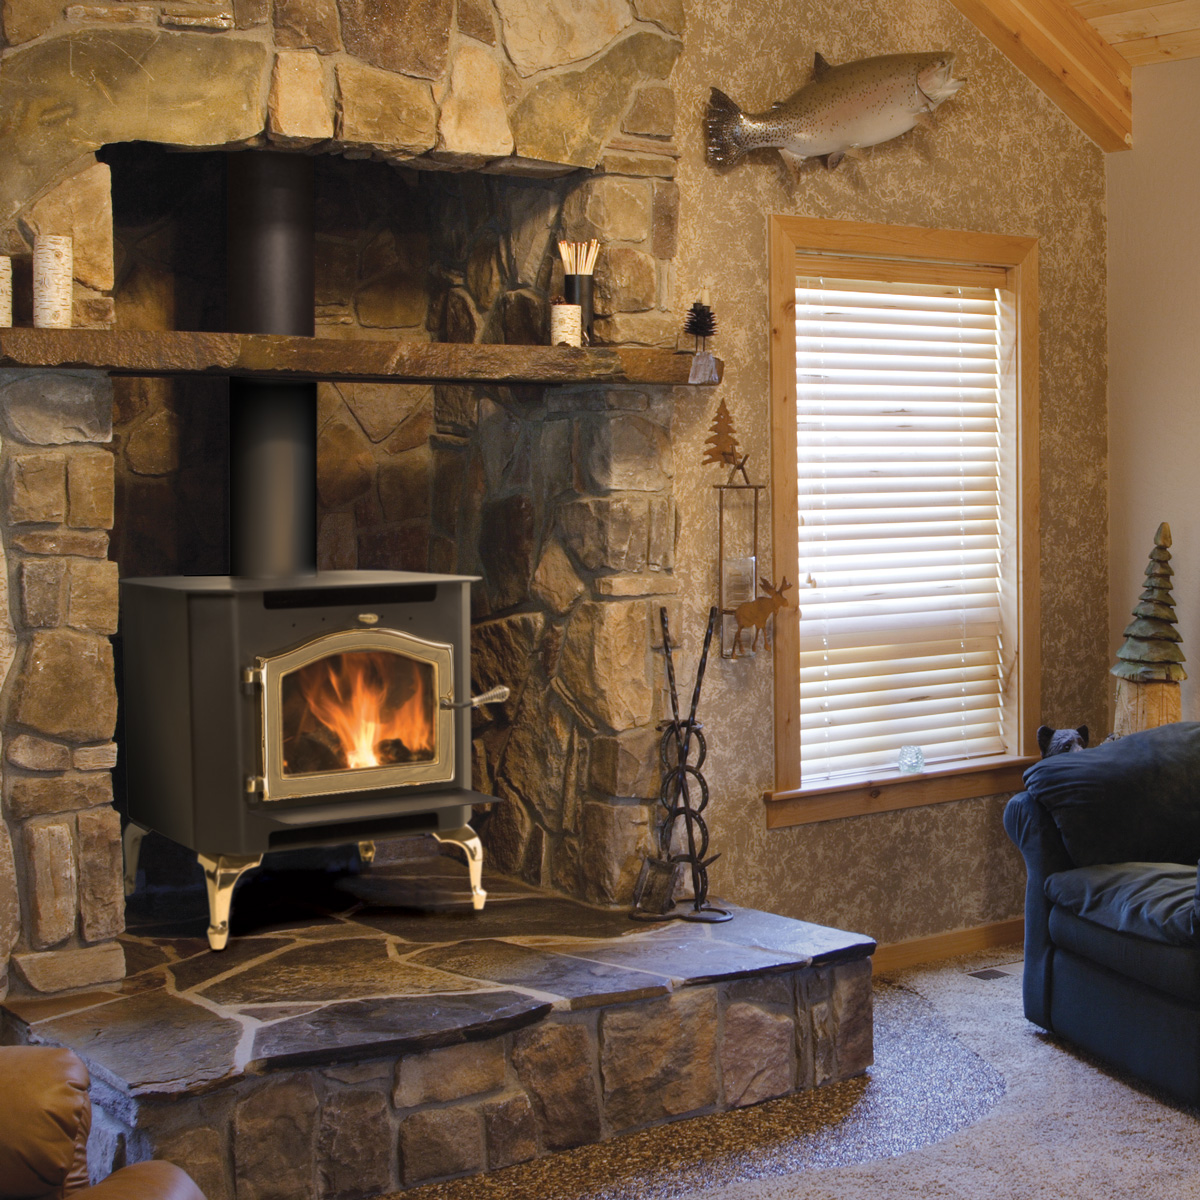 Wood Stove In Fireplace Hearth Com Forums Home